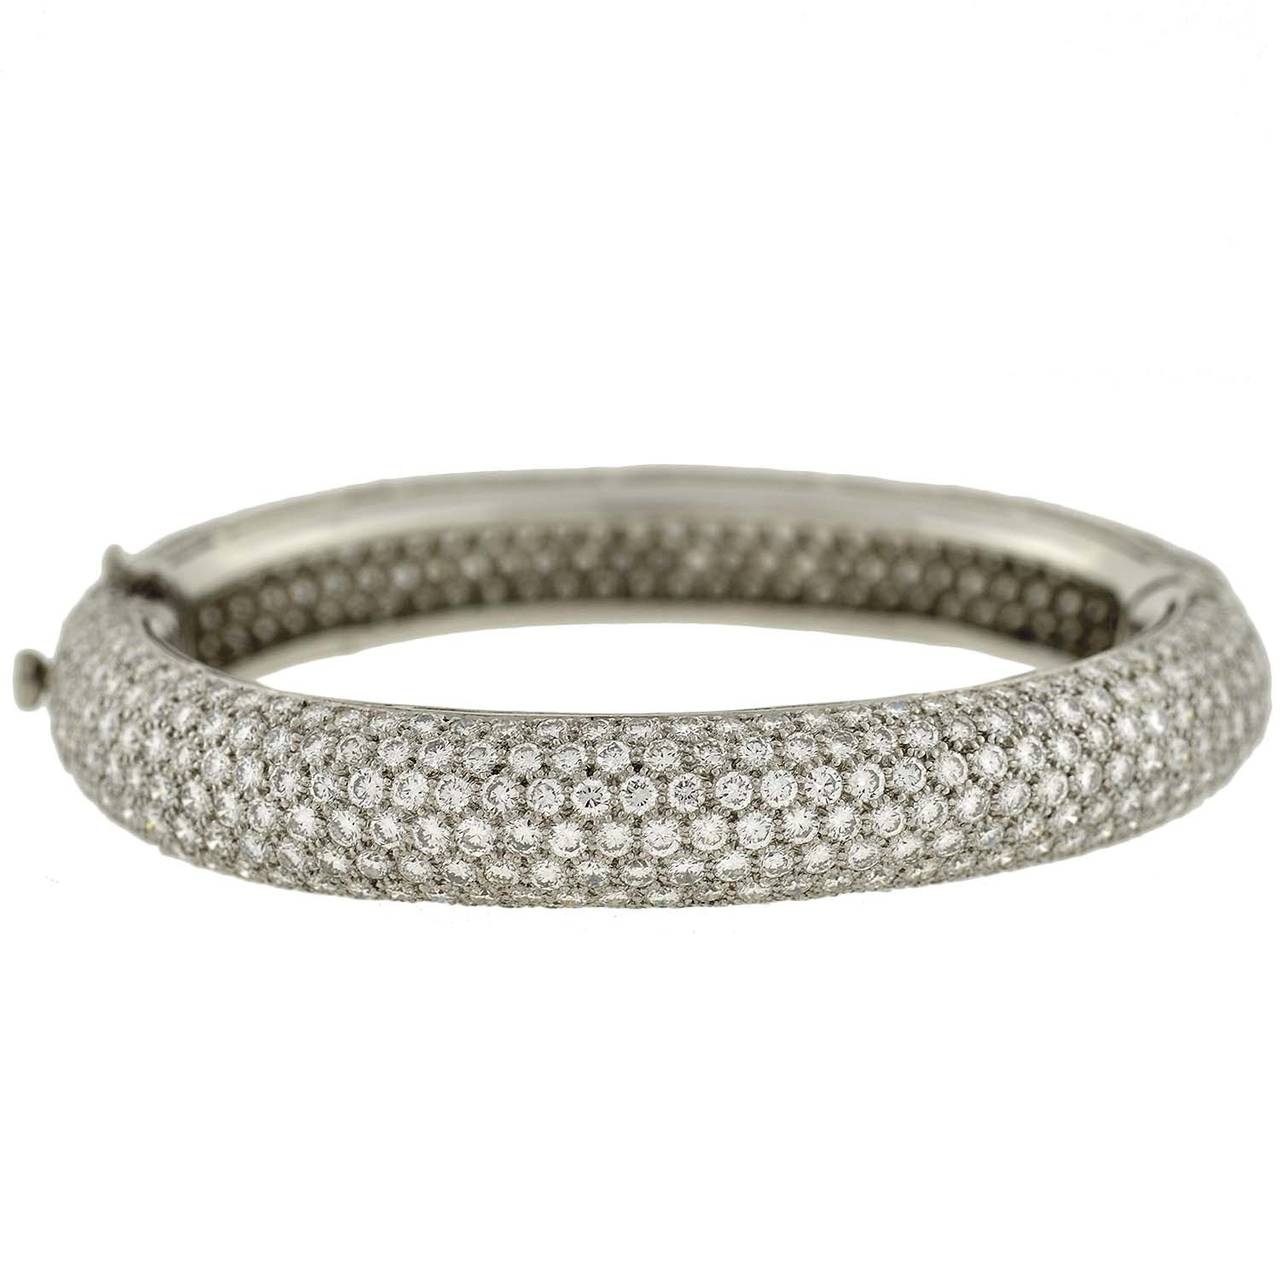 bracelets bangles pave diamond black and dunay white bangle joaillier bracelet